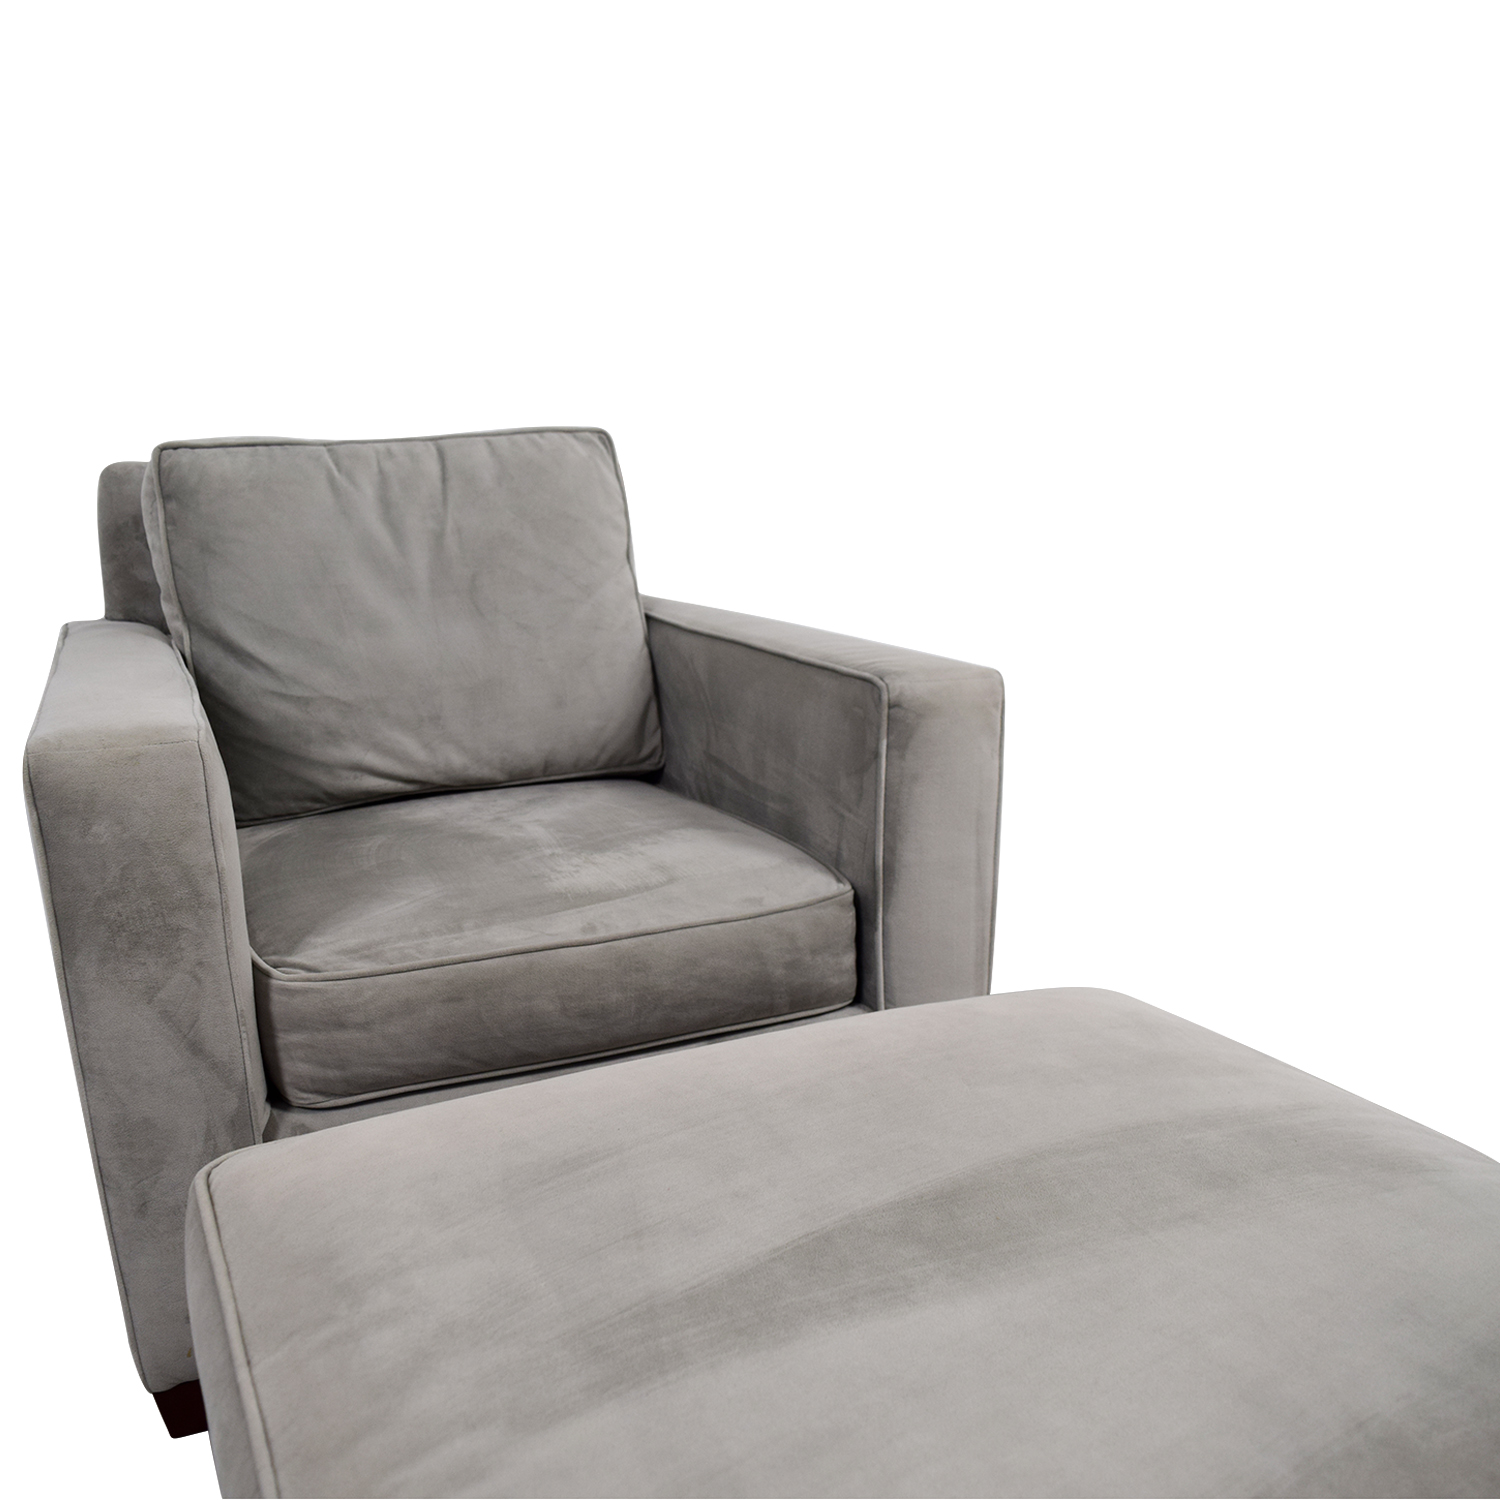 gray accent chair with ottoman ikea tub covers ebay 49 off west elm grey and